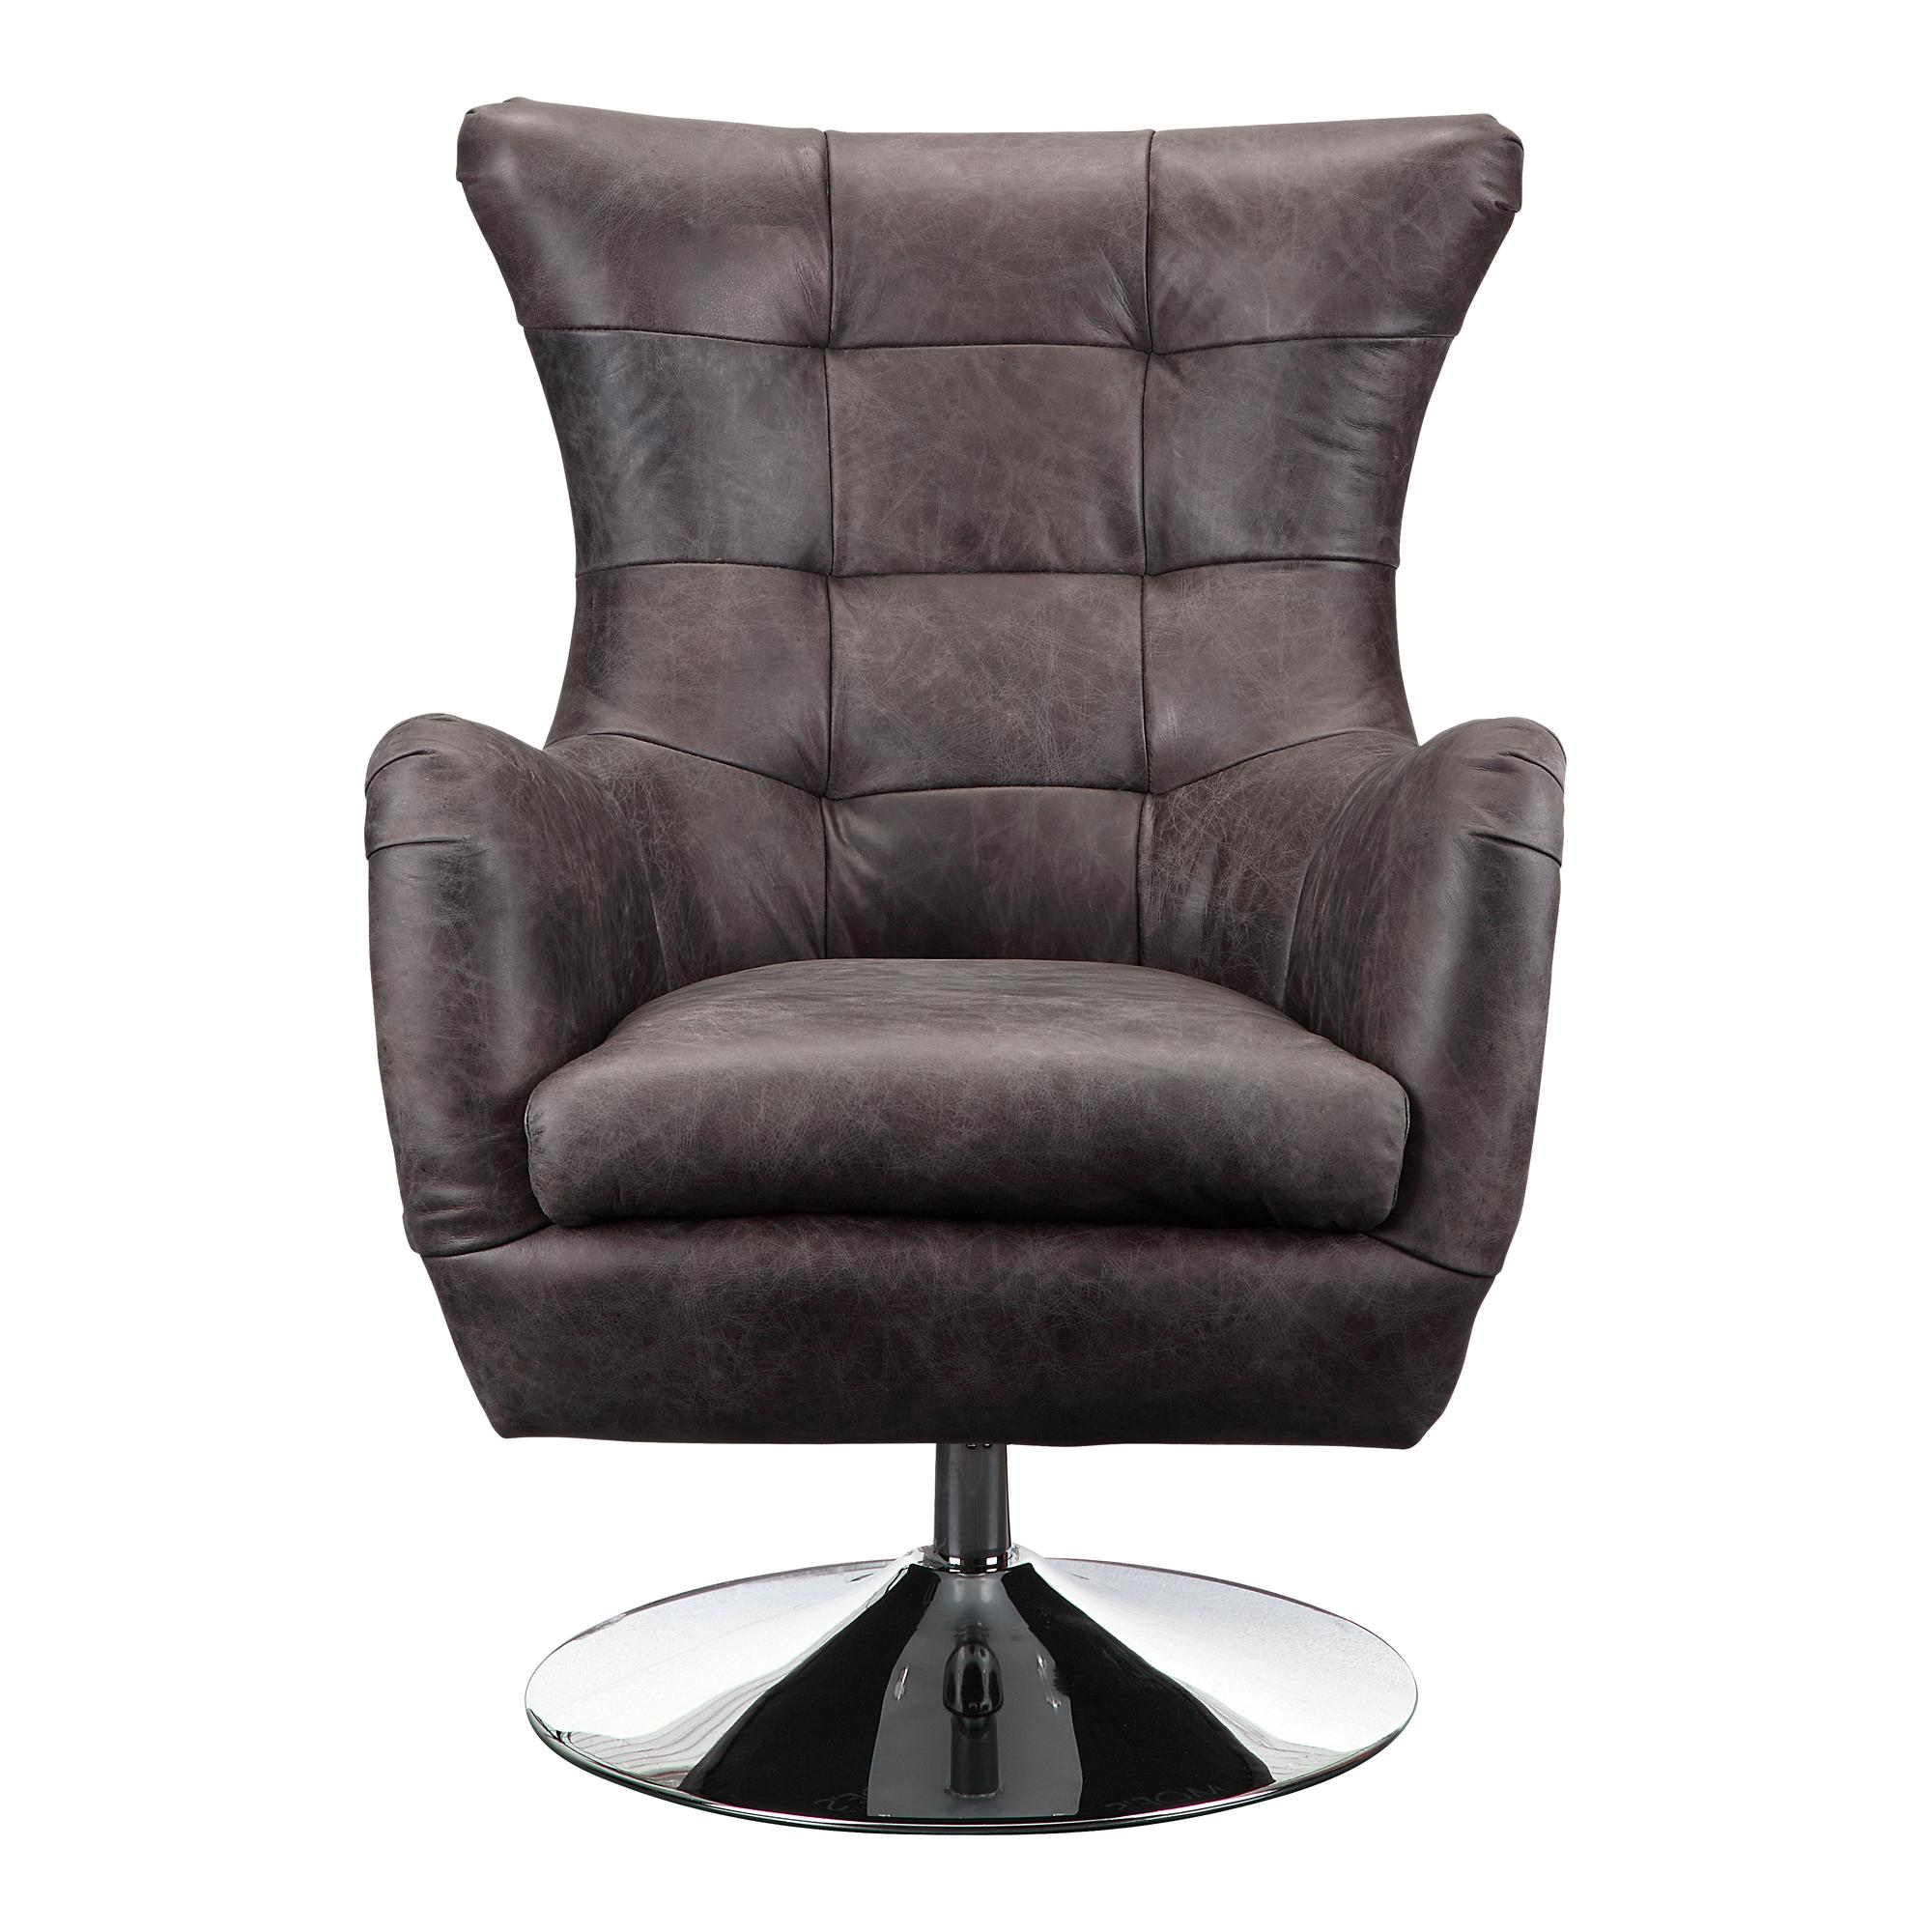 Moes Home Apsley Modern Leather Tufted Back Swivel Chair